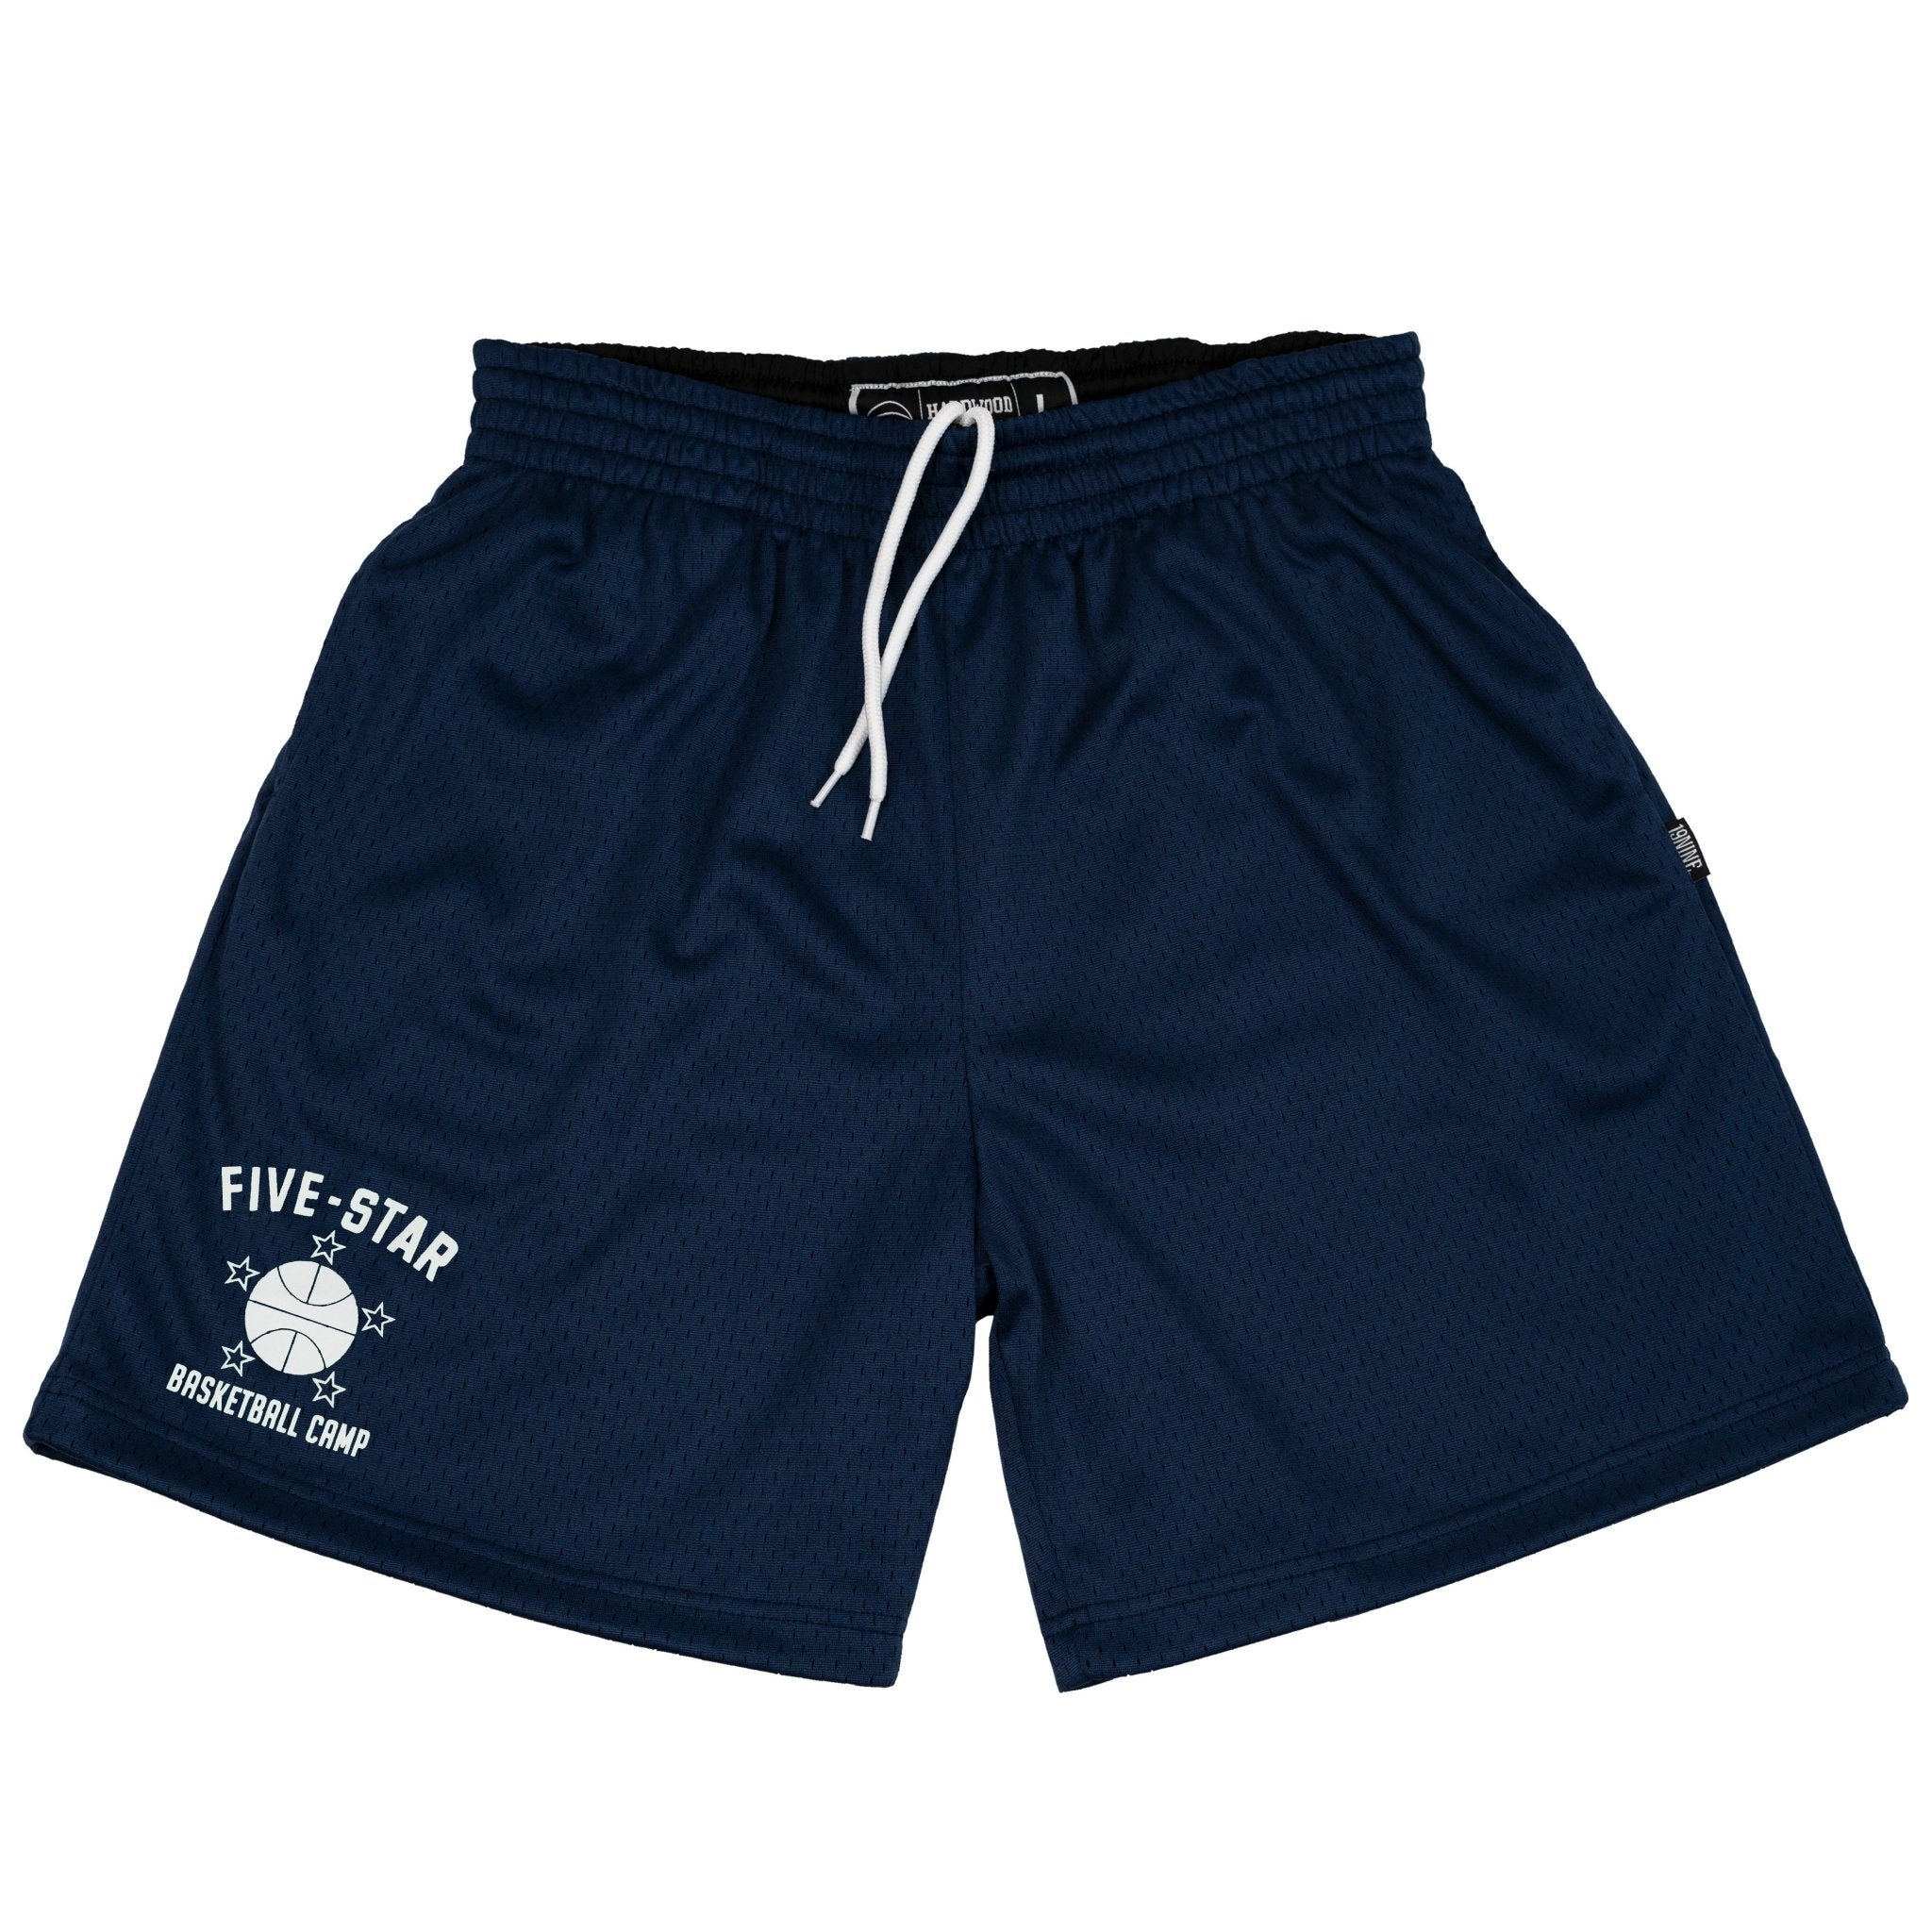 Five-Star Basketball Camp Shorts - SLAM